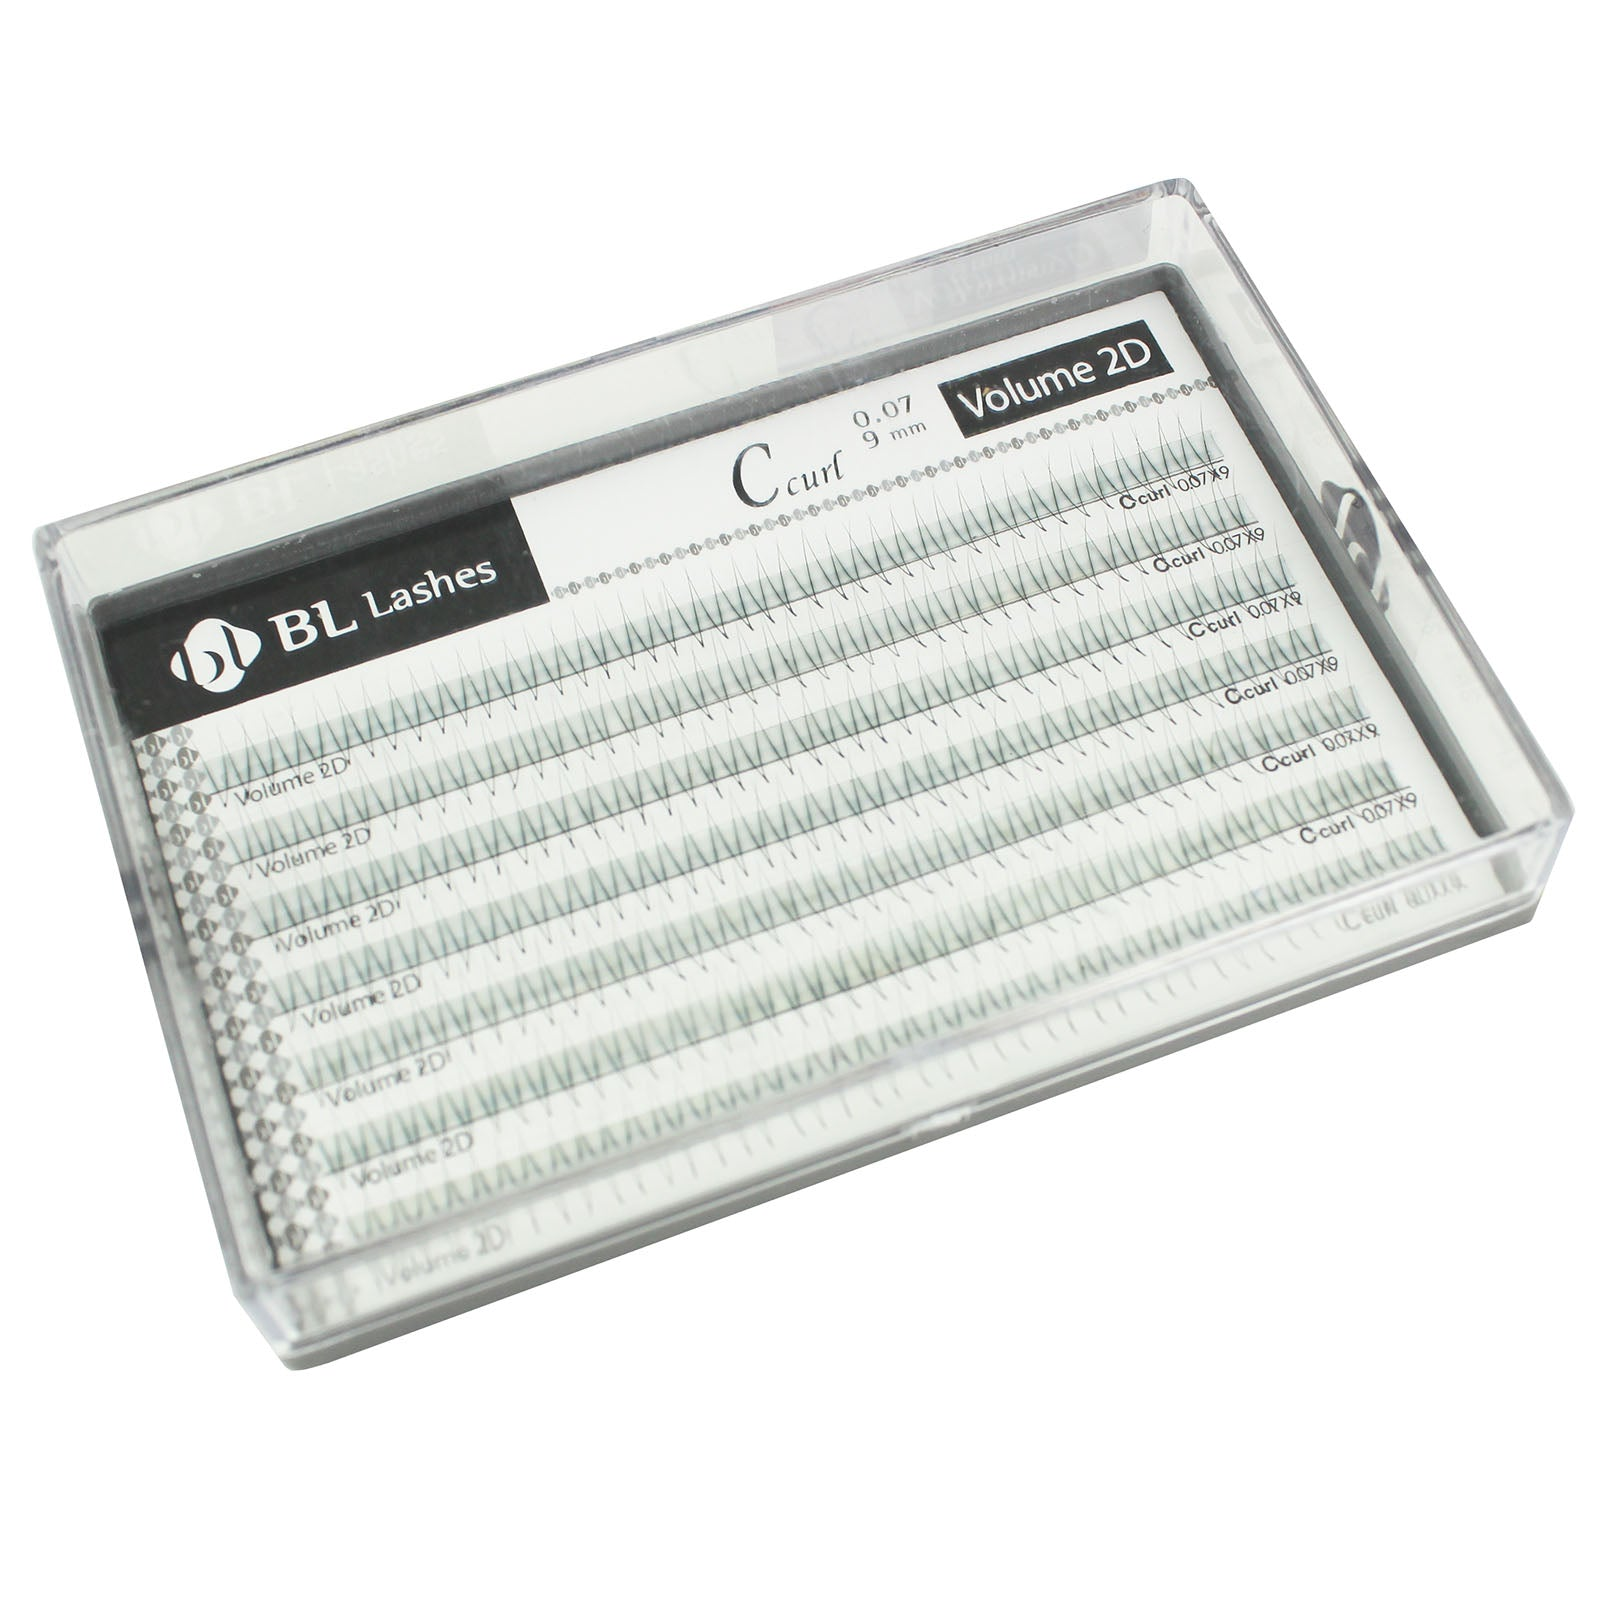 BL Blink Lash Volume Lash C 2D 0.07MM Thickness